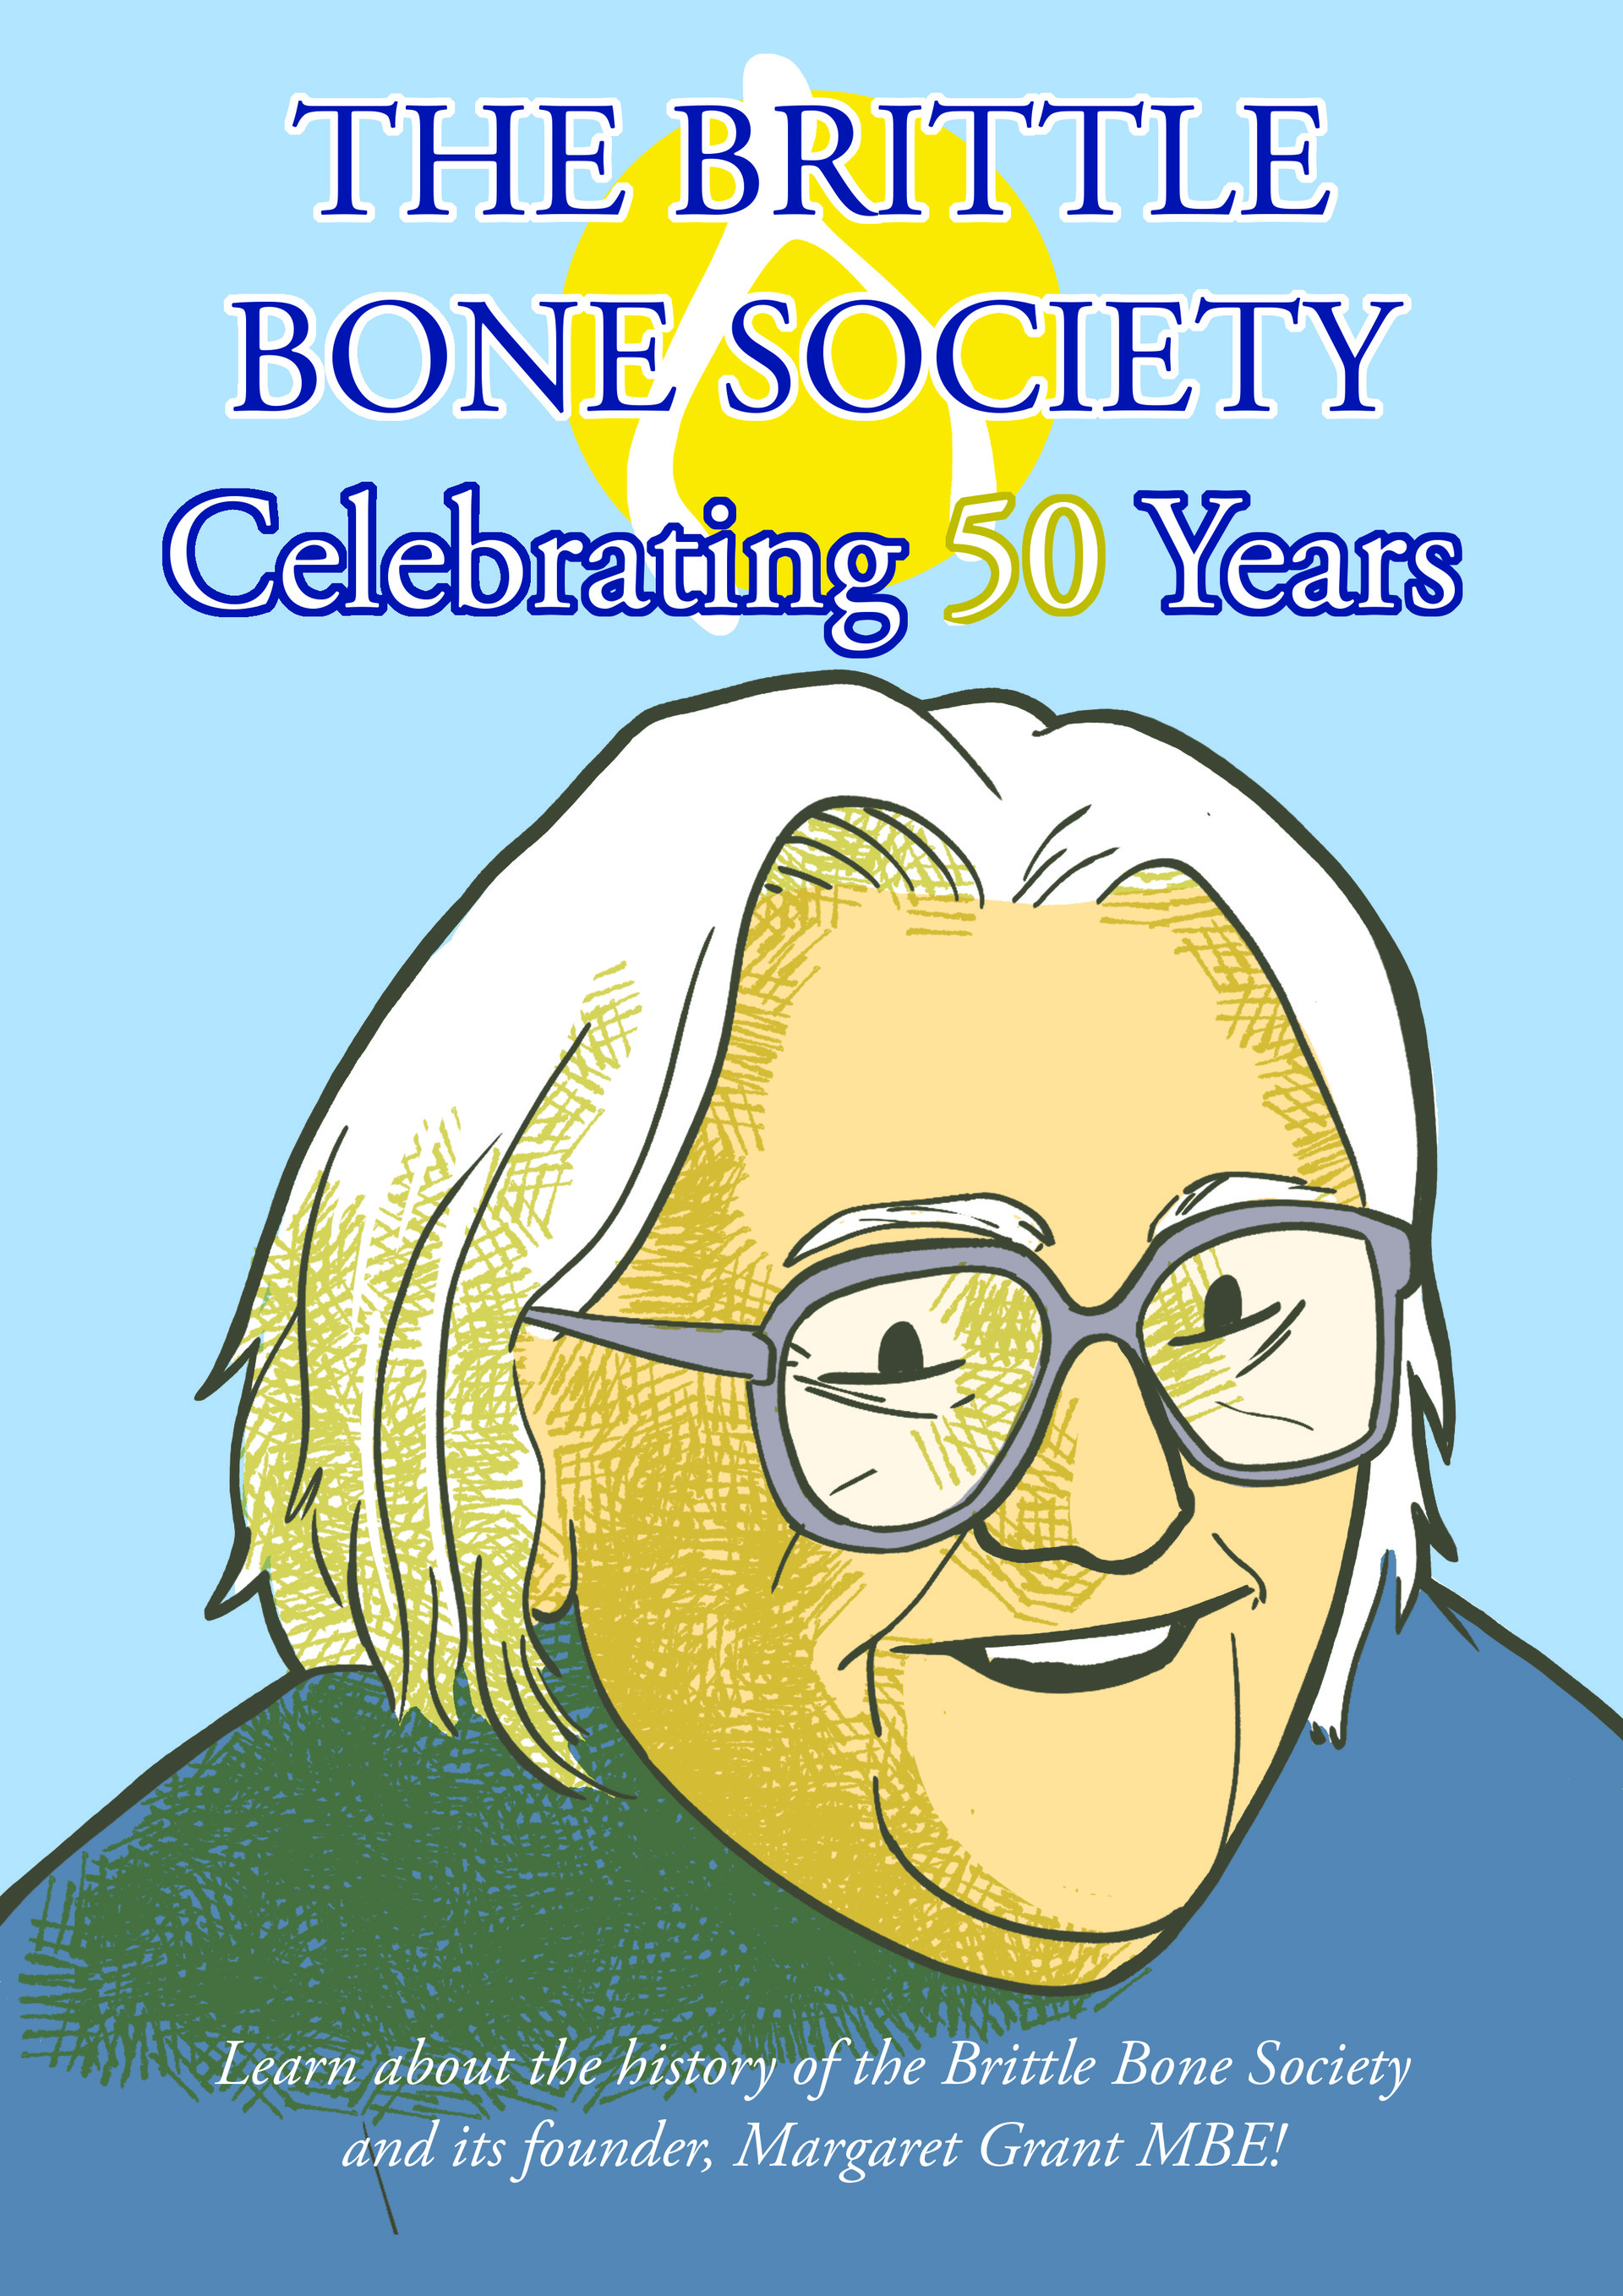 Elliot balson brittle bone society comic cover4